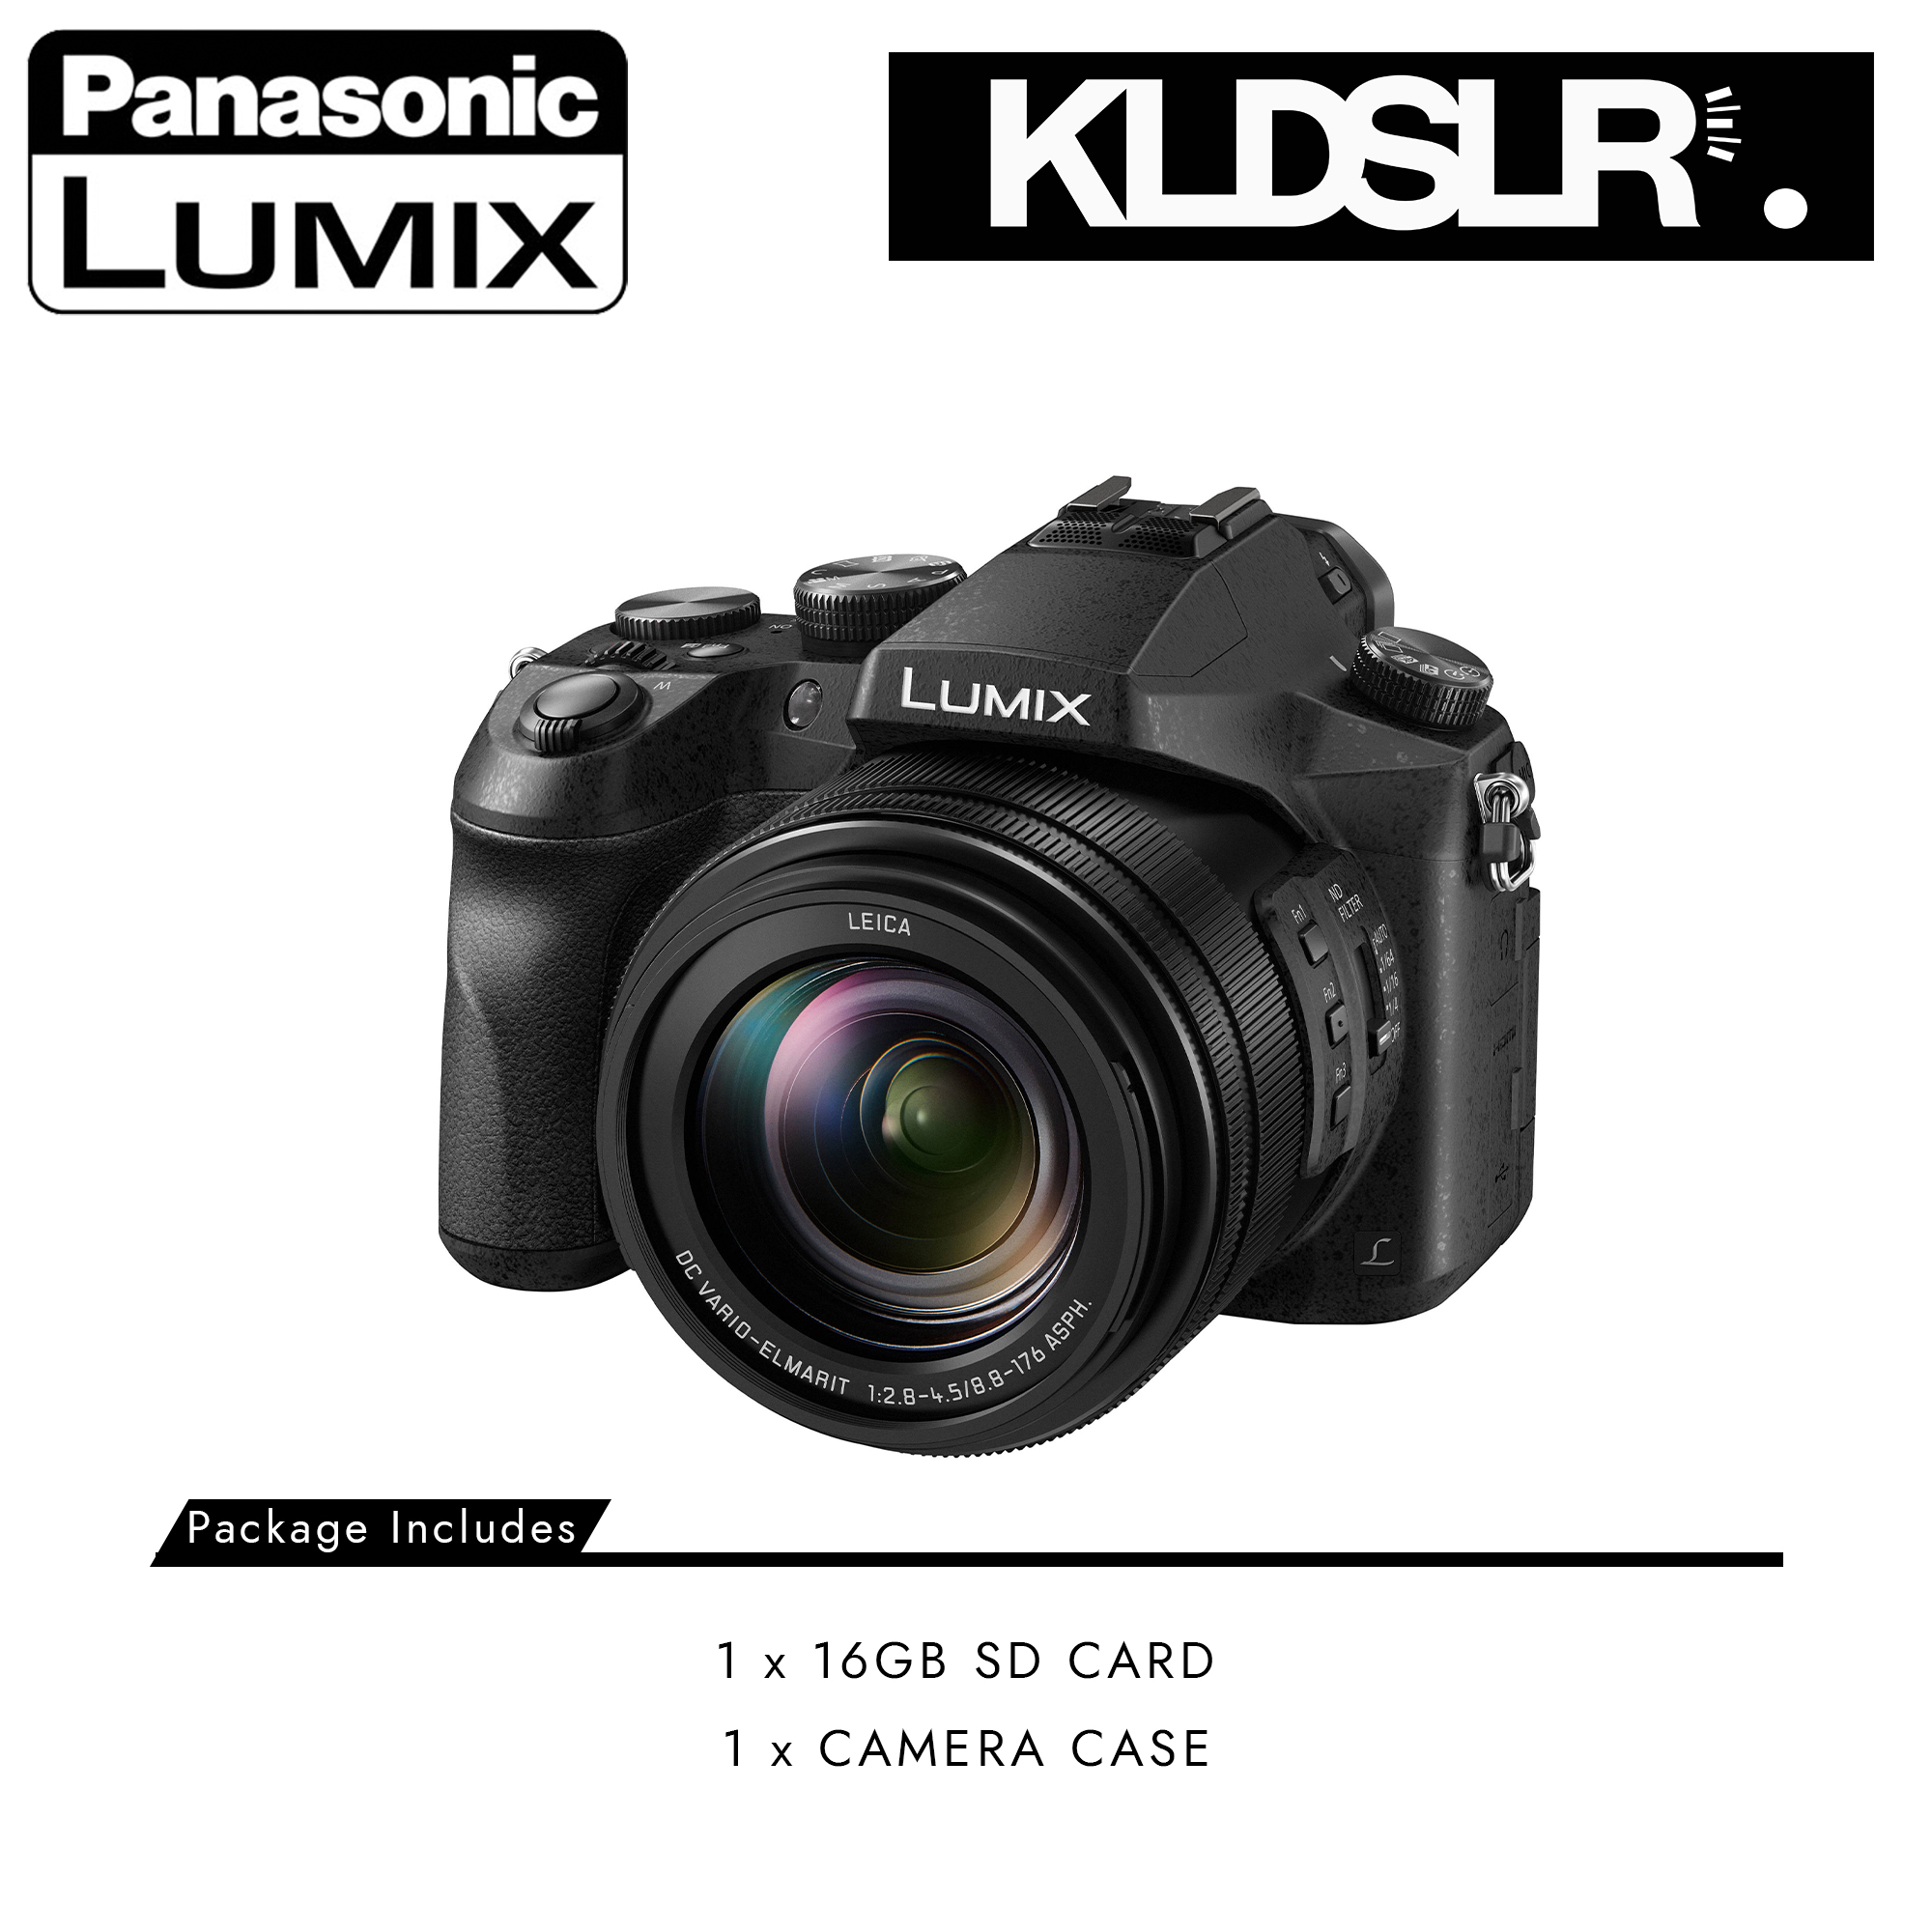 Panasonic Lumix DMC-FZ2500 Digital Camera | FZ2500-PKG